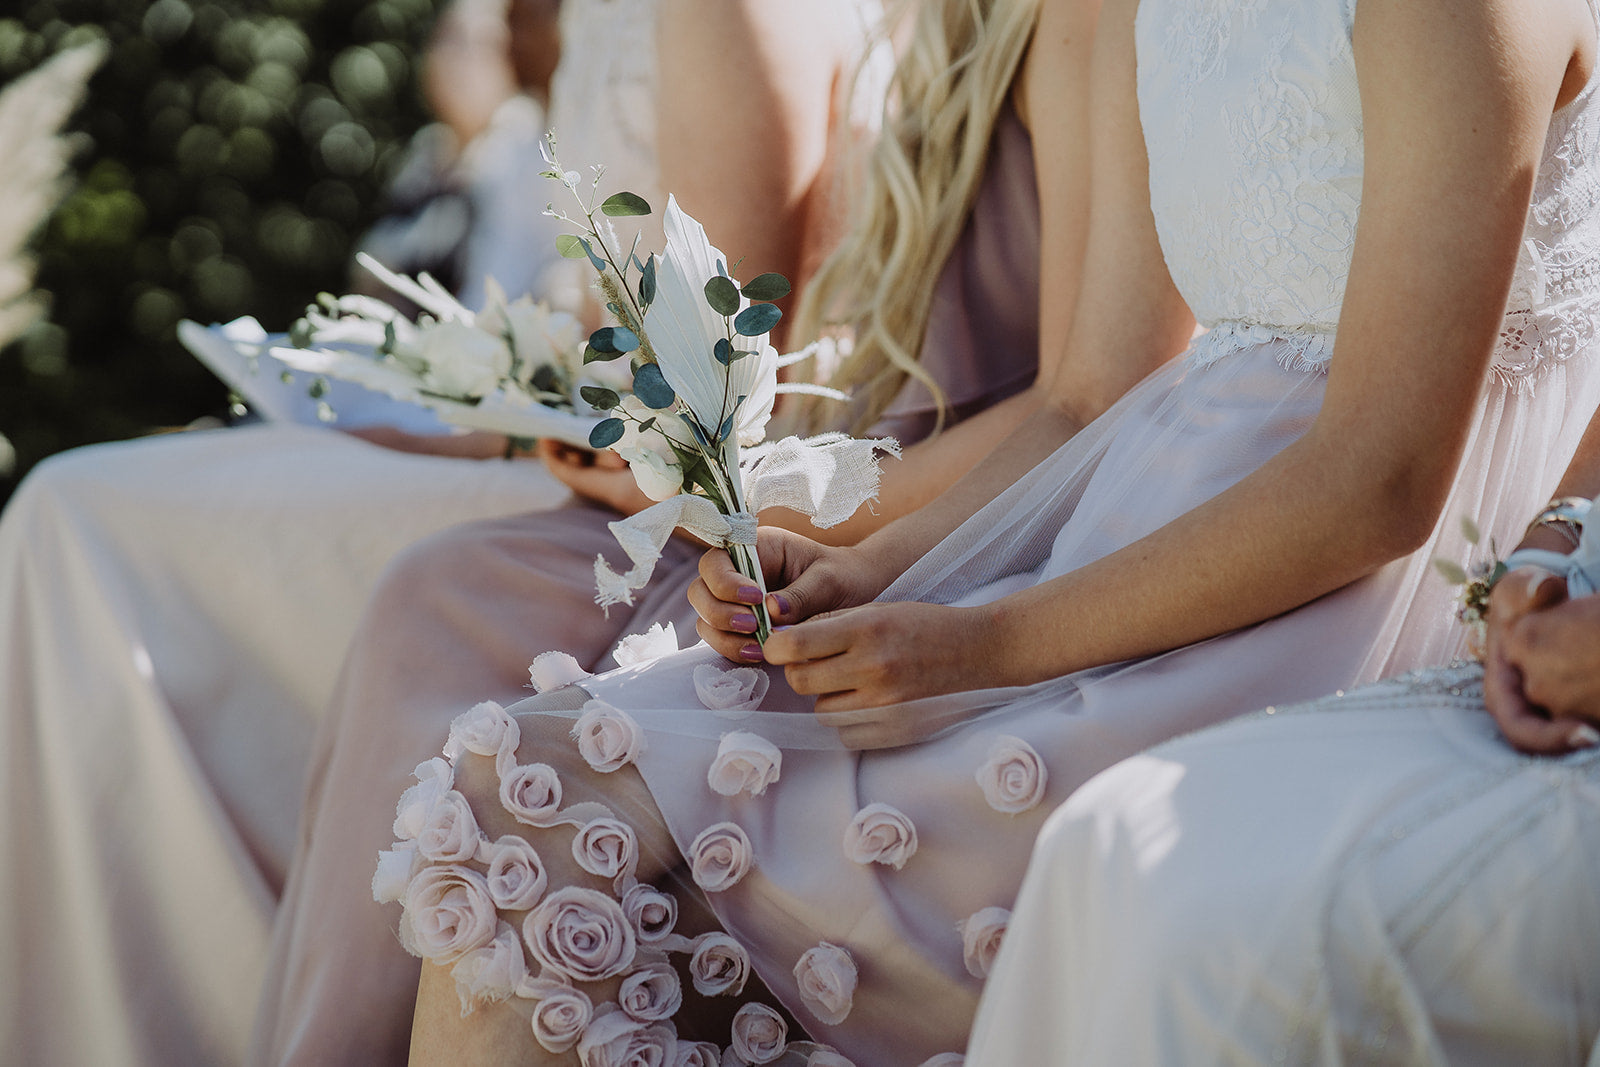 The Bridesmaid holds her flowers in hand. Her dress is embellished with fabric roses.